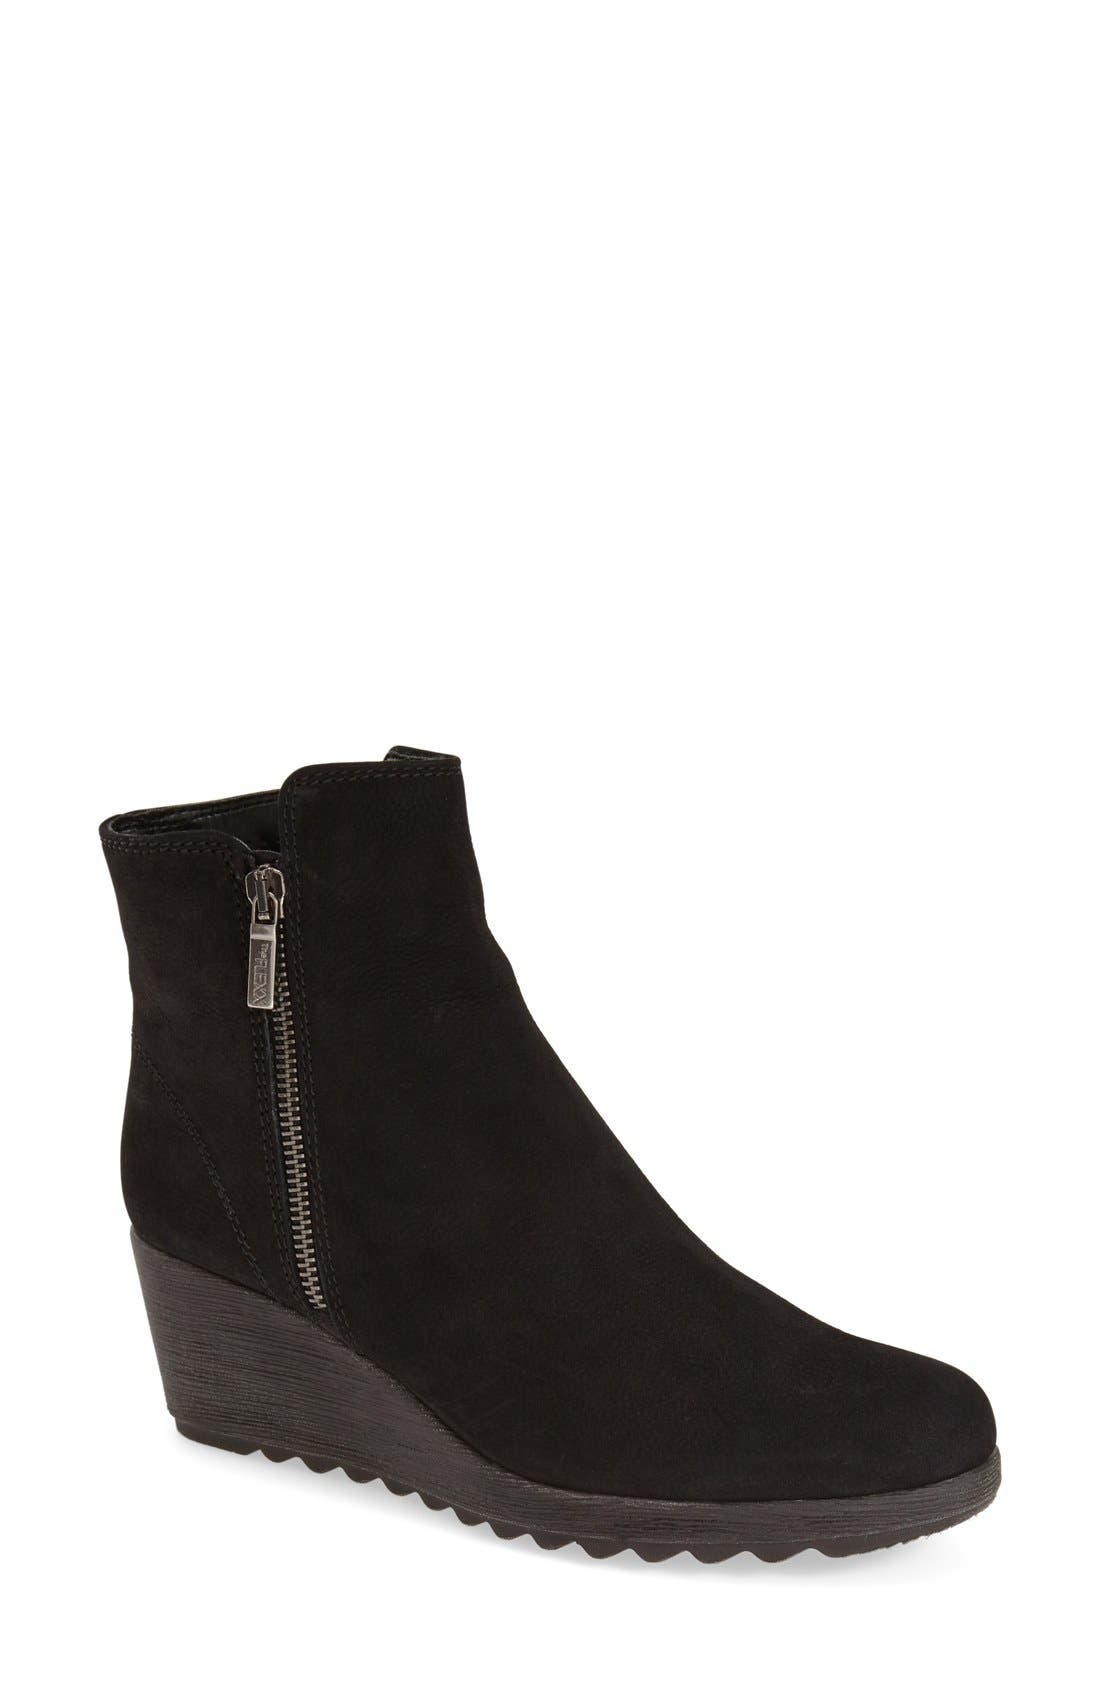 THE FLEXX,                             'Pic a Winner' Wedge Bootie,                             Main thumbnail 1, color,                             013